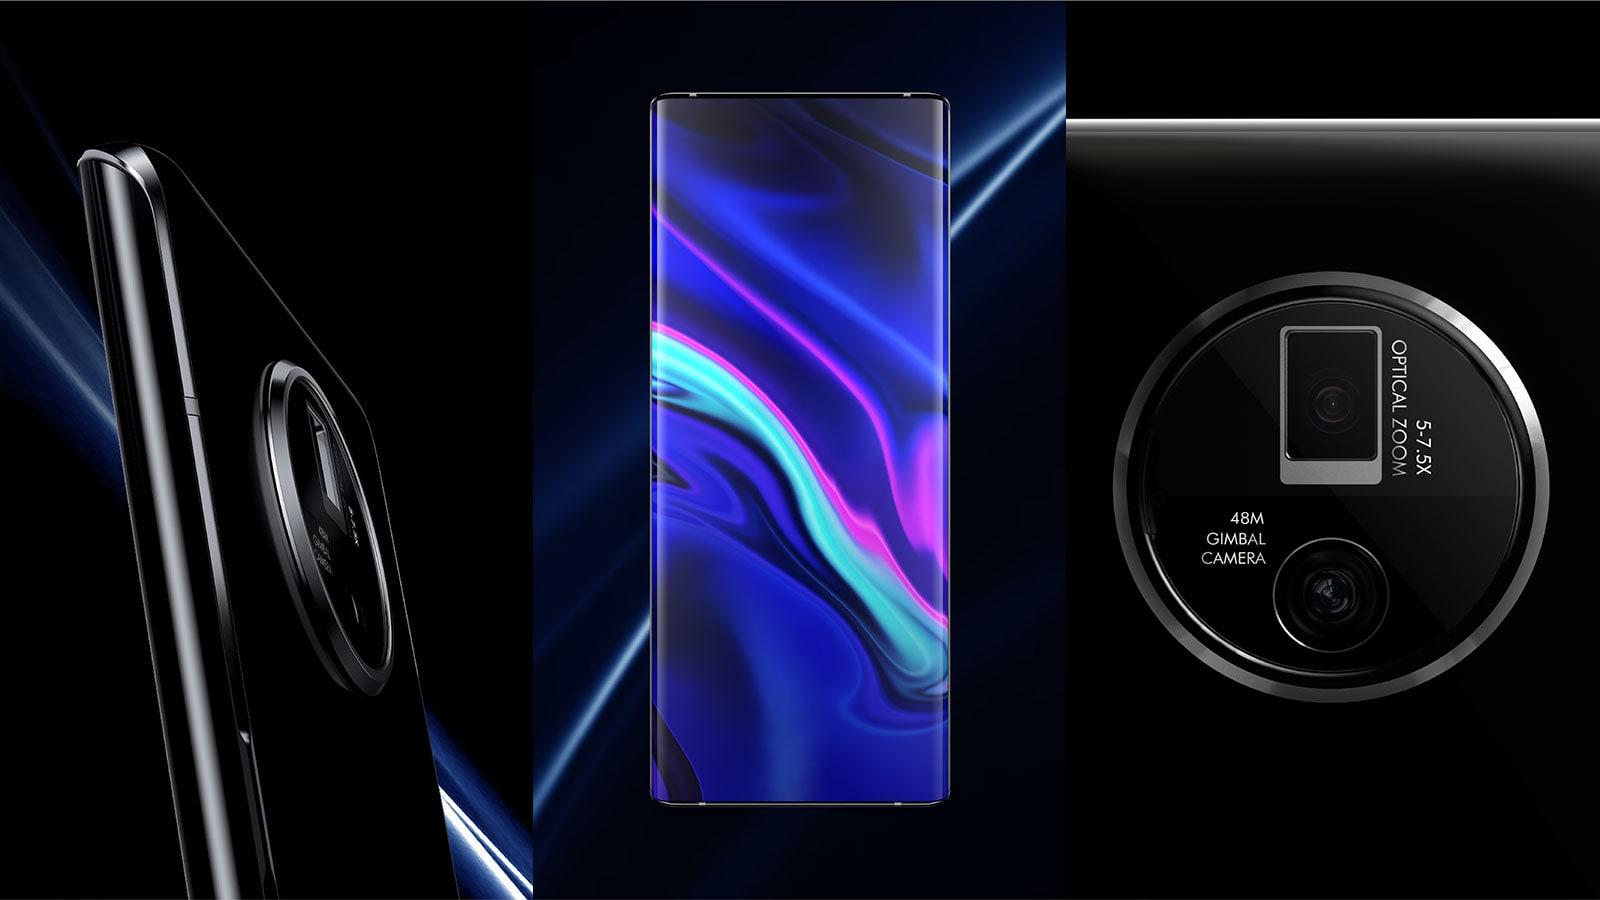 Photo of Vivo APEX 2020 announced, concept smartphone full of new technologies such as gimbal camera, under screen camera, 120 degree display-Engadget Japanese version